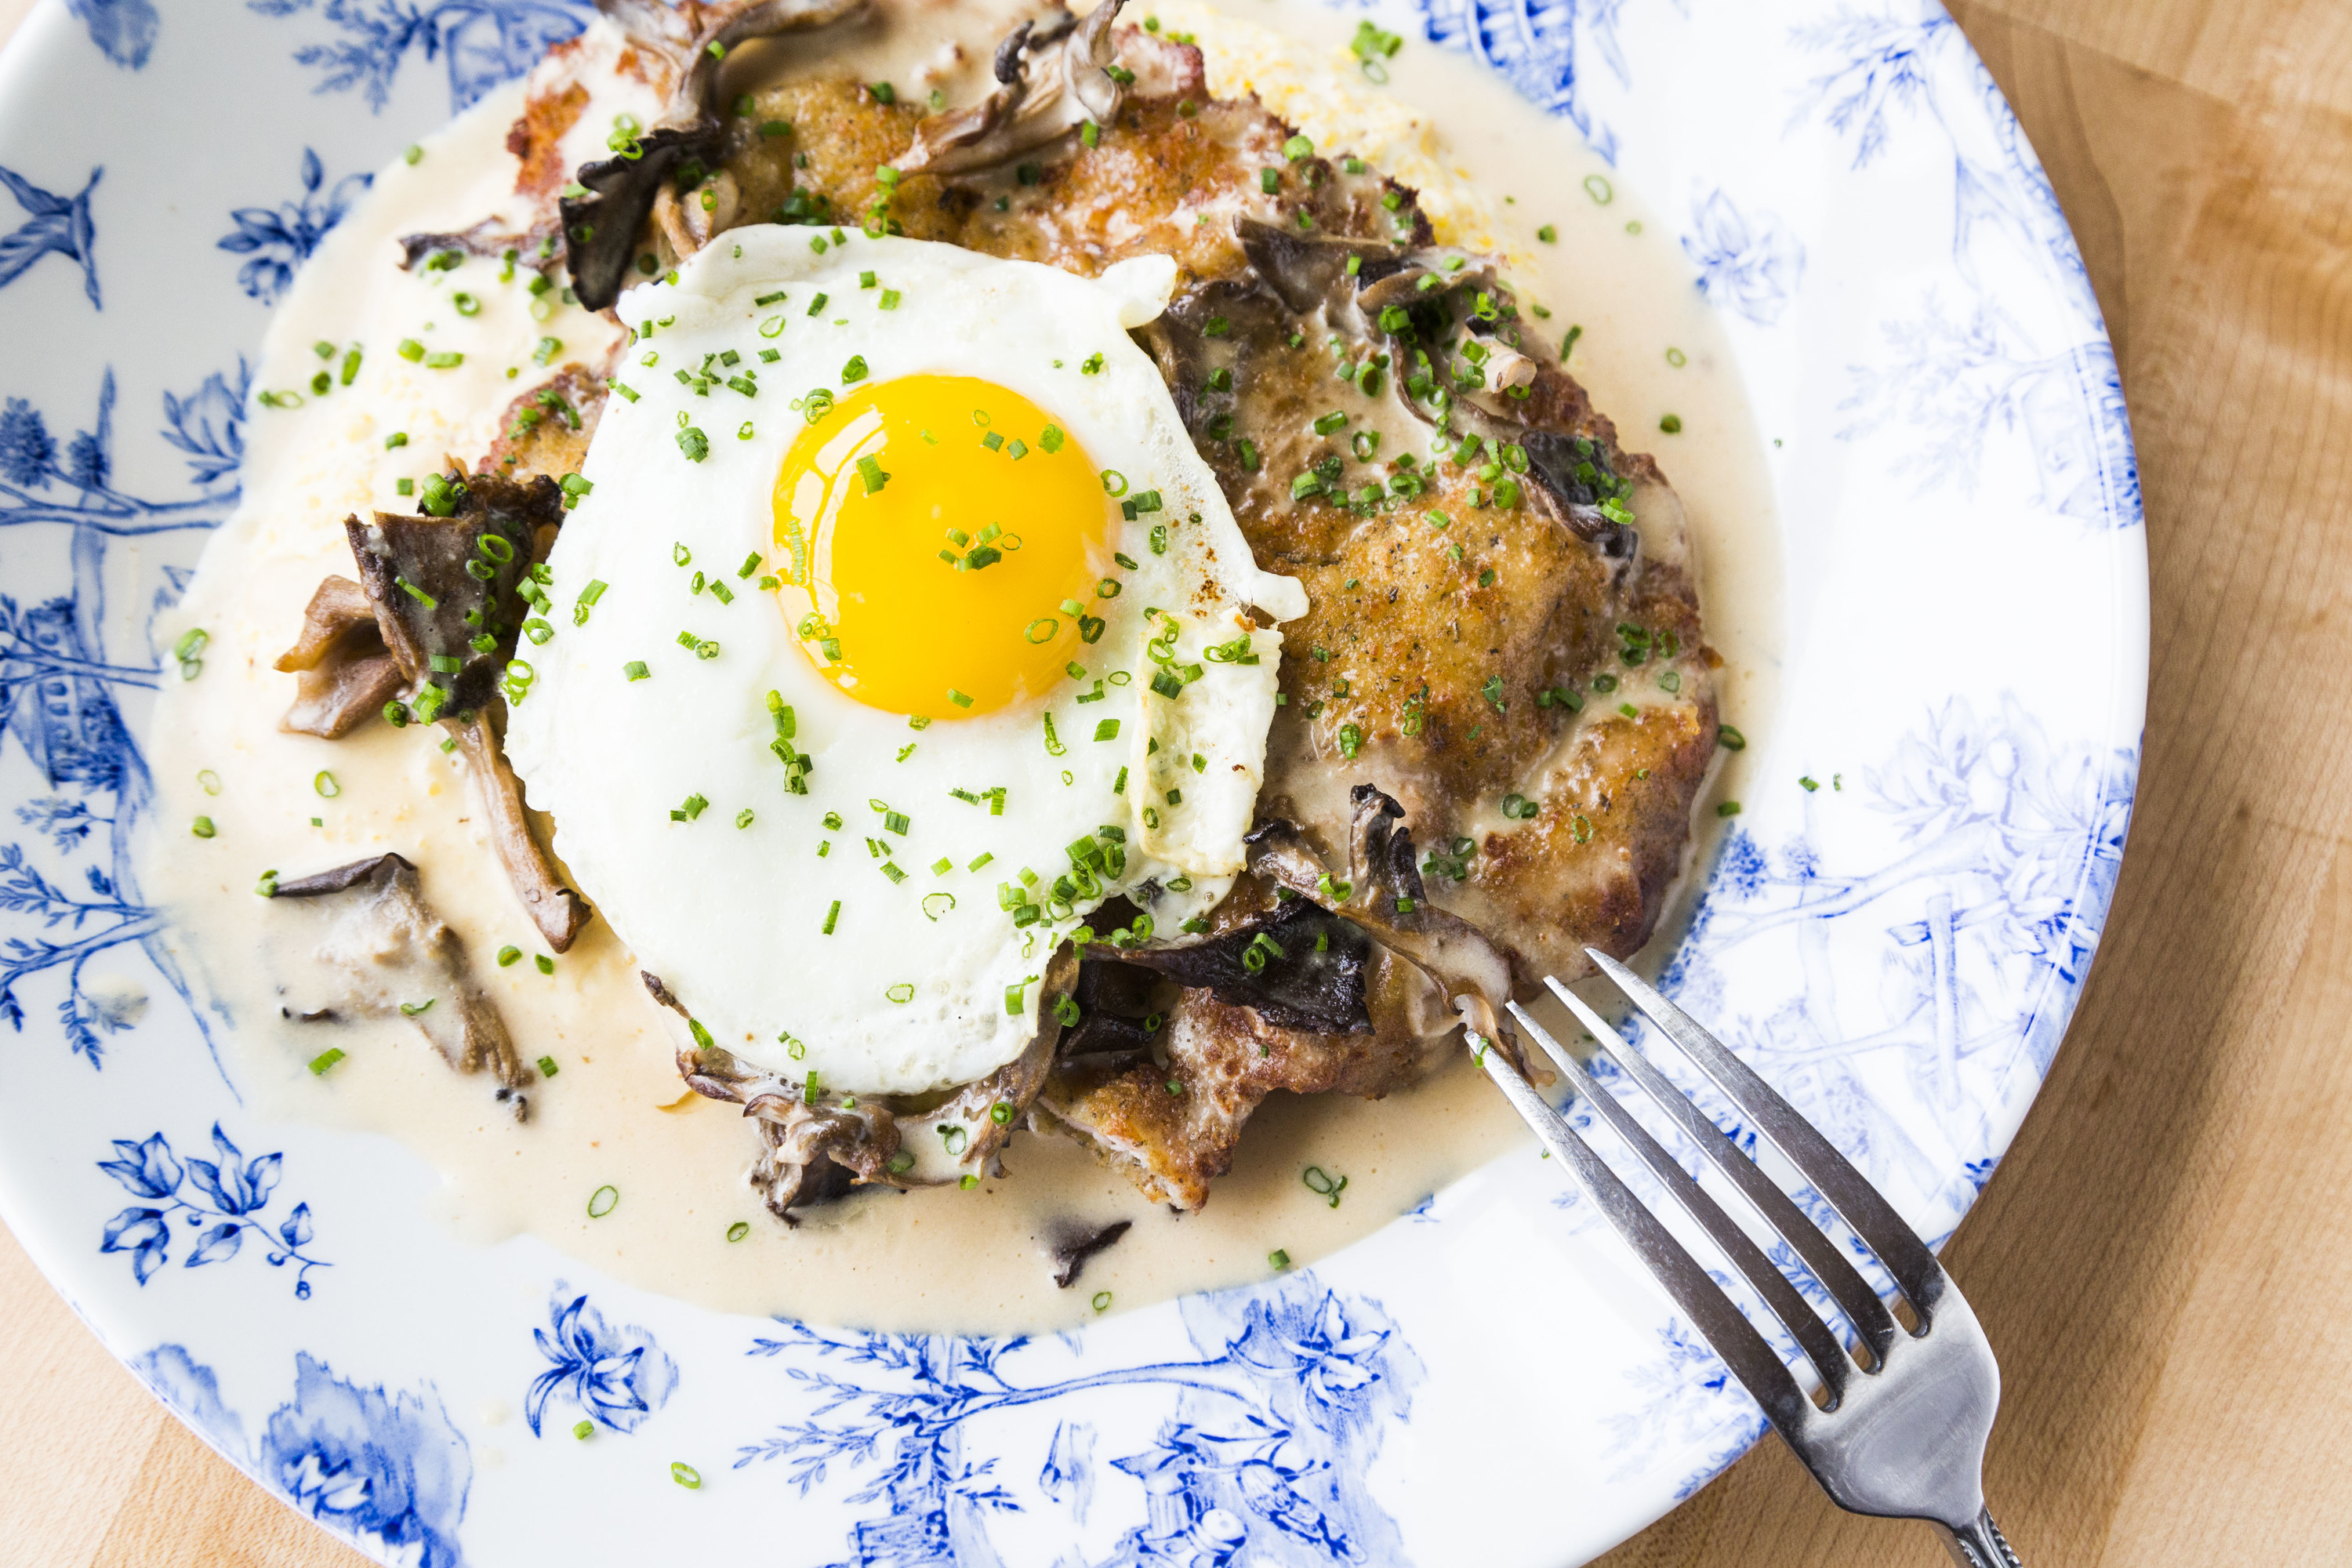 The 28 best brunch spots in Chicago right now